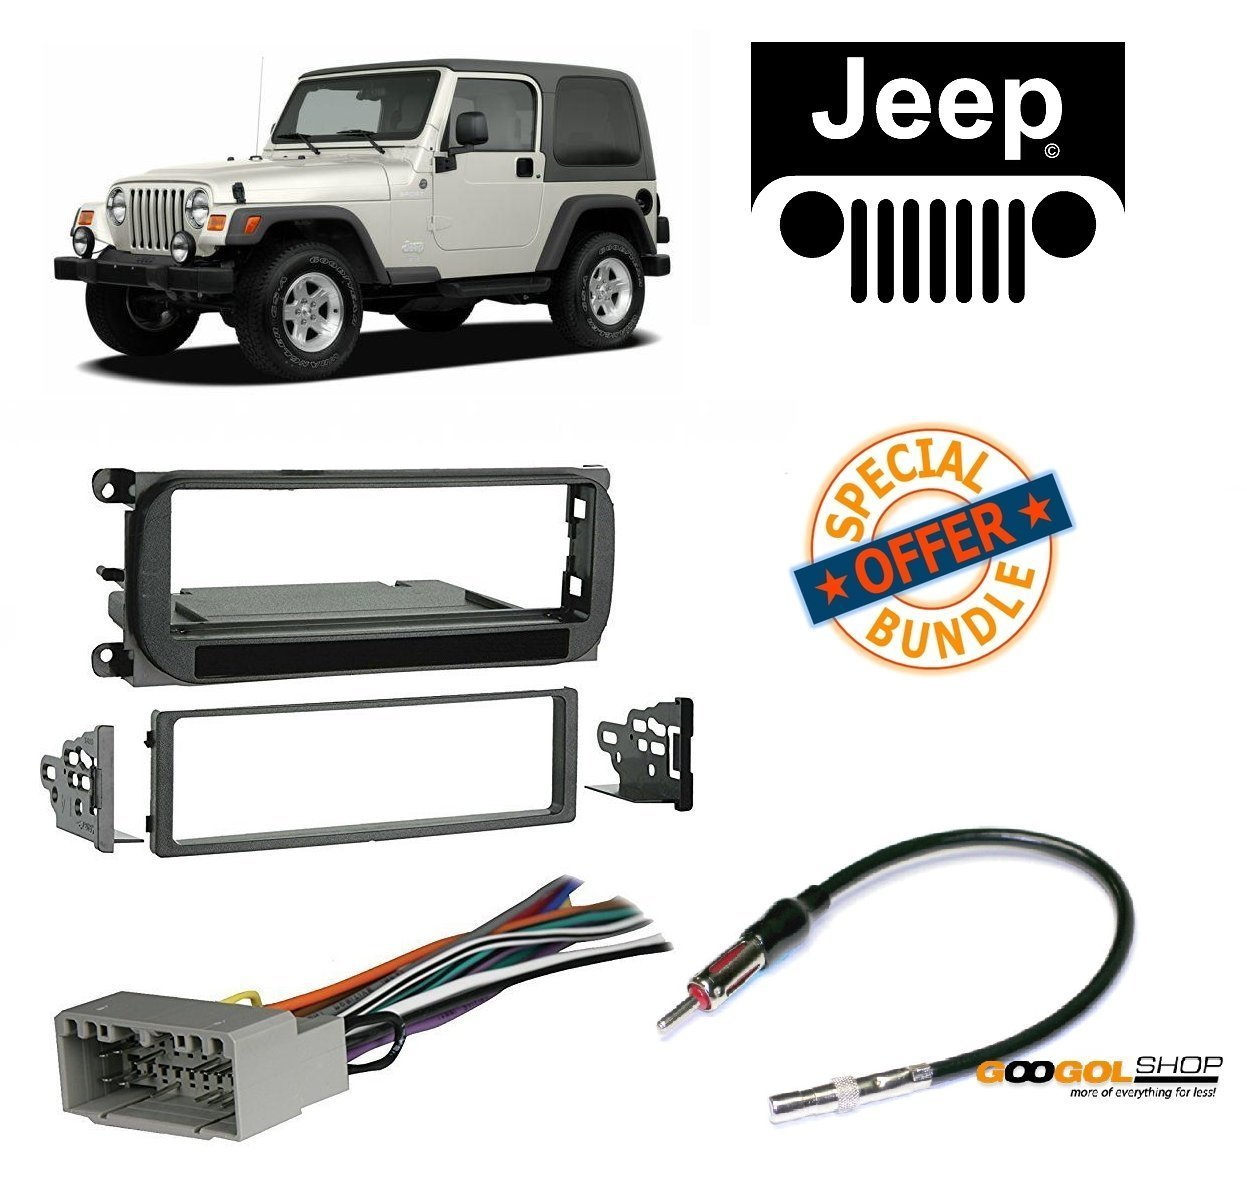 radio stereo install dash kit wire harness and antenna adapter for Nissan 370Z Radio Wiring Harness radio stereo install dash kit wire harness and antenna adapter for jeep grand cherokee (02 04), liberty (02 07), wrangler (03 06) walmart com